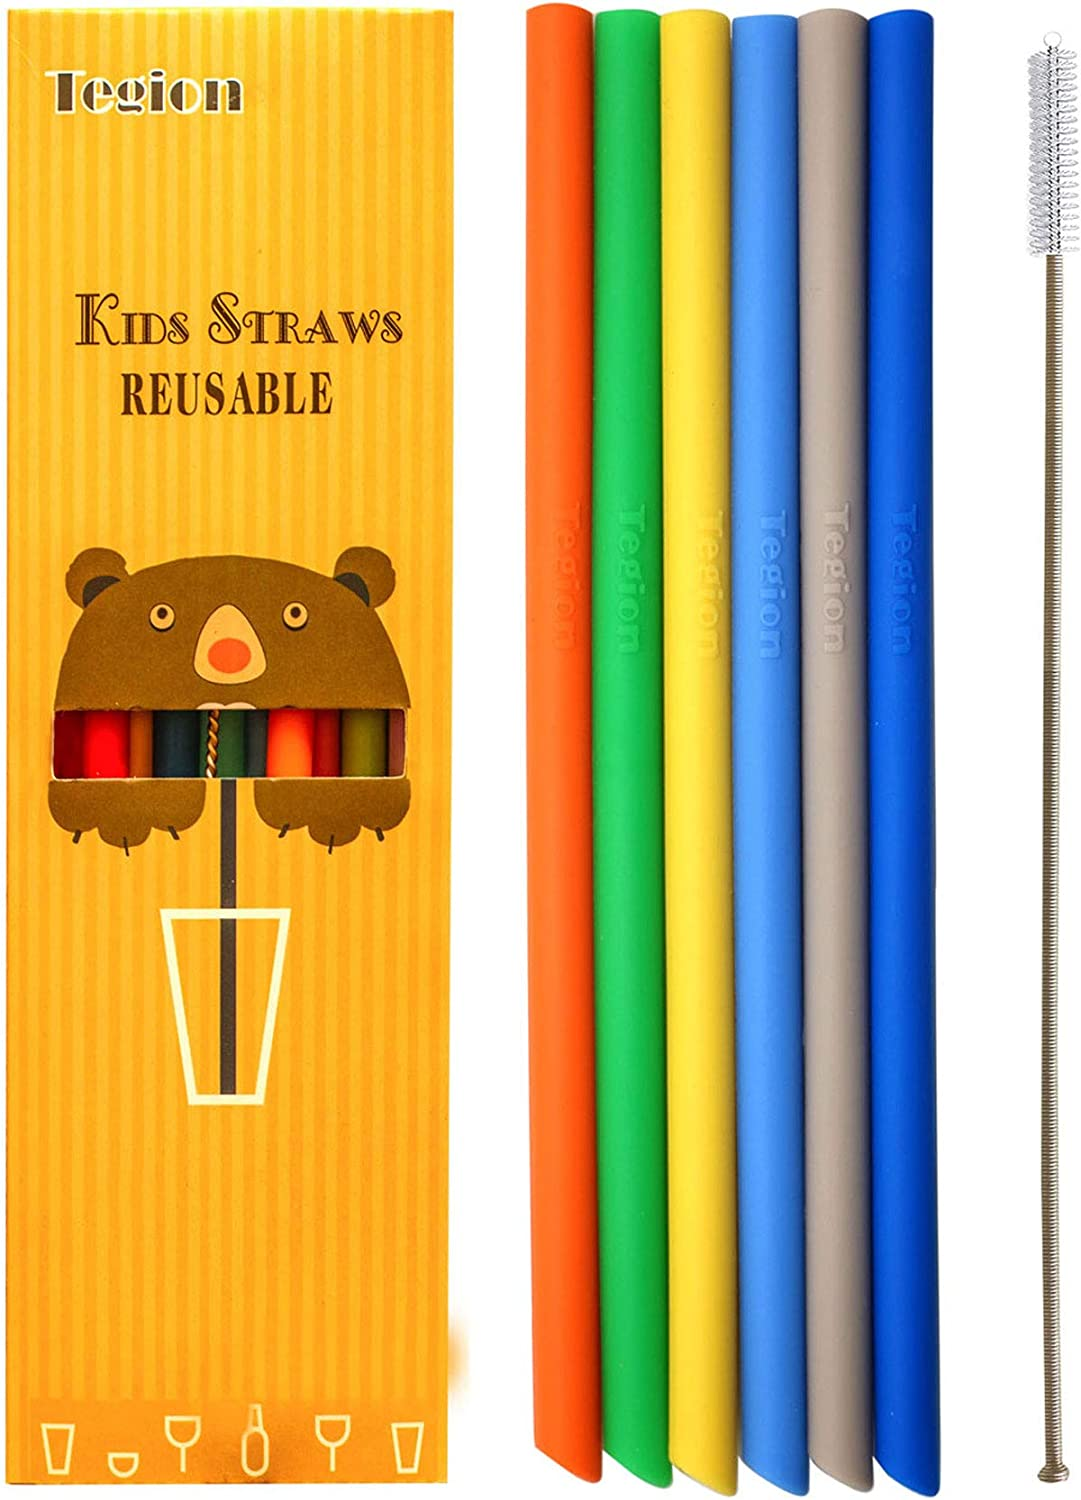 Tegion Thin Short Reusable Toddlers& Kids Silicone Straws for The First Years Take & Toss Spill Proof Straw Cup, 10-14OZ Small tumbler 7 Pack (boys color)